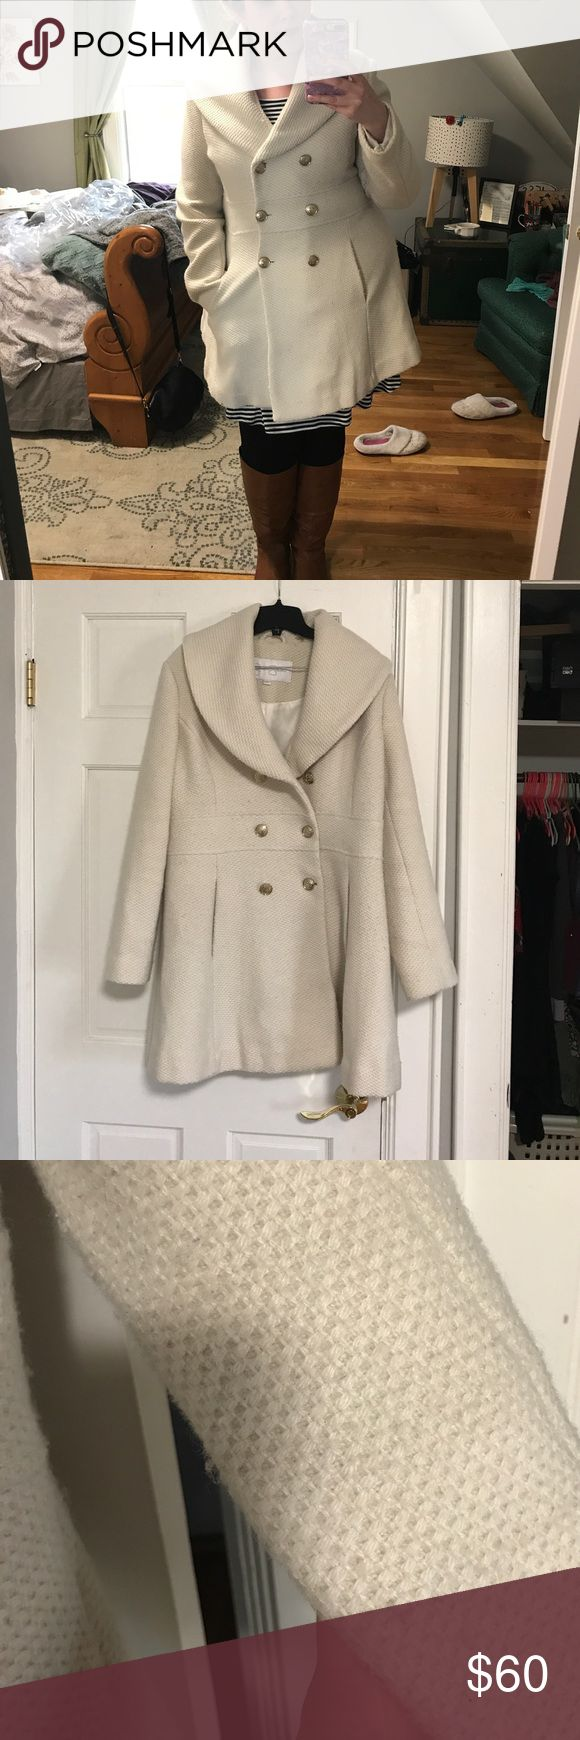 Jessica Simpson peacoat ❄️❄️ Beautiful peacoat from Jessica Simpson a few years back! I wore it a lot the first year I got it but haven't since. This coat is about 2.5 years old and freshly dry cleaned! There is some light pilling as it was gently used for a season but it is otherwise is wonderful condition. No tears or stains. This will make you feel warm and cozy like you're in an ABC holiday special! Make me an offer! Jessica Simpson Jackets & Coats Pea Coats